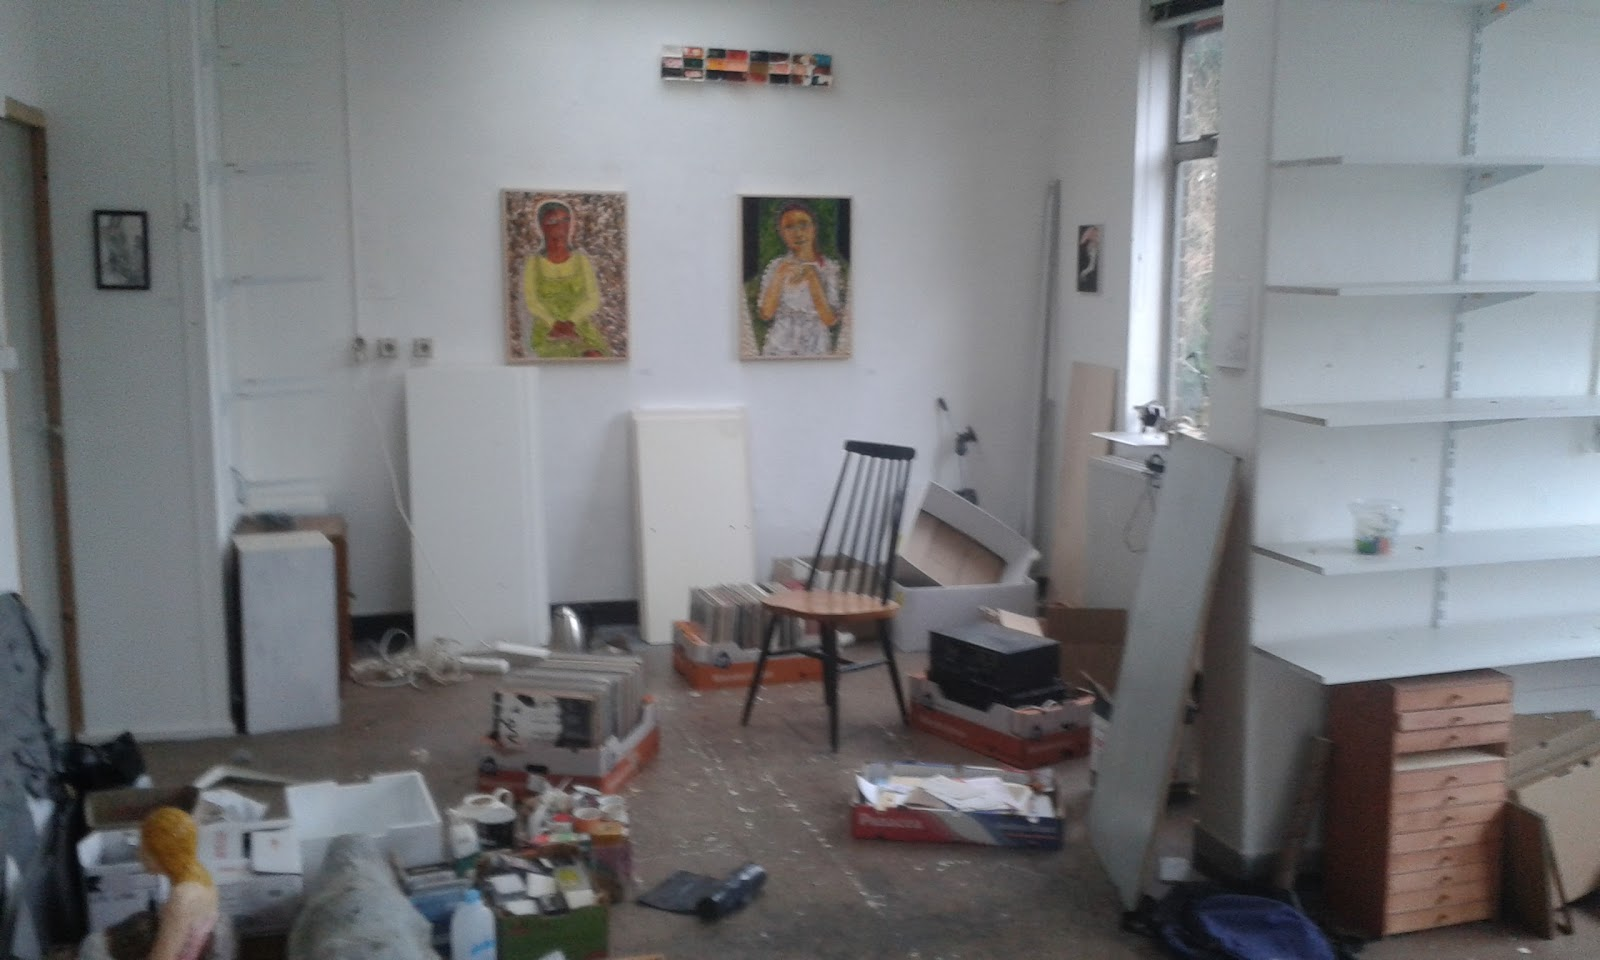 dismantling the old studio